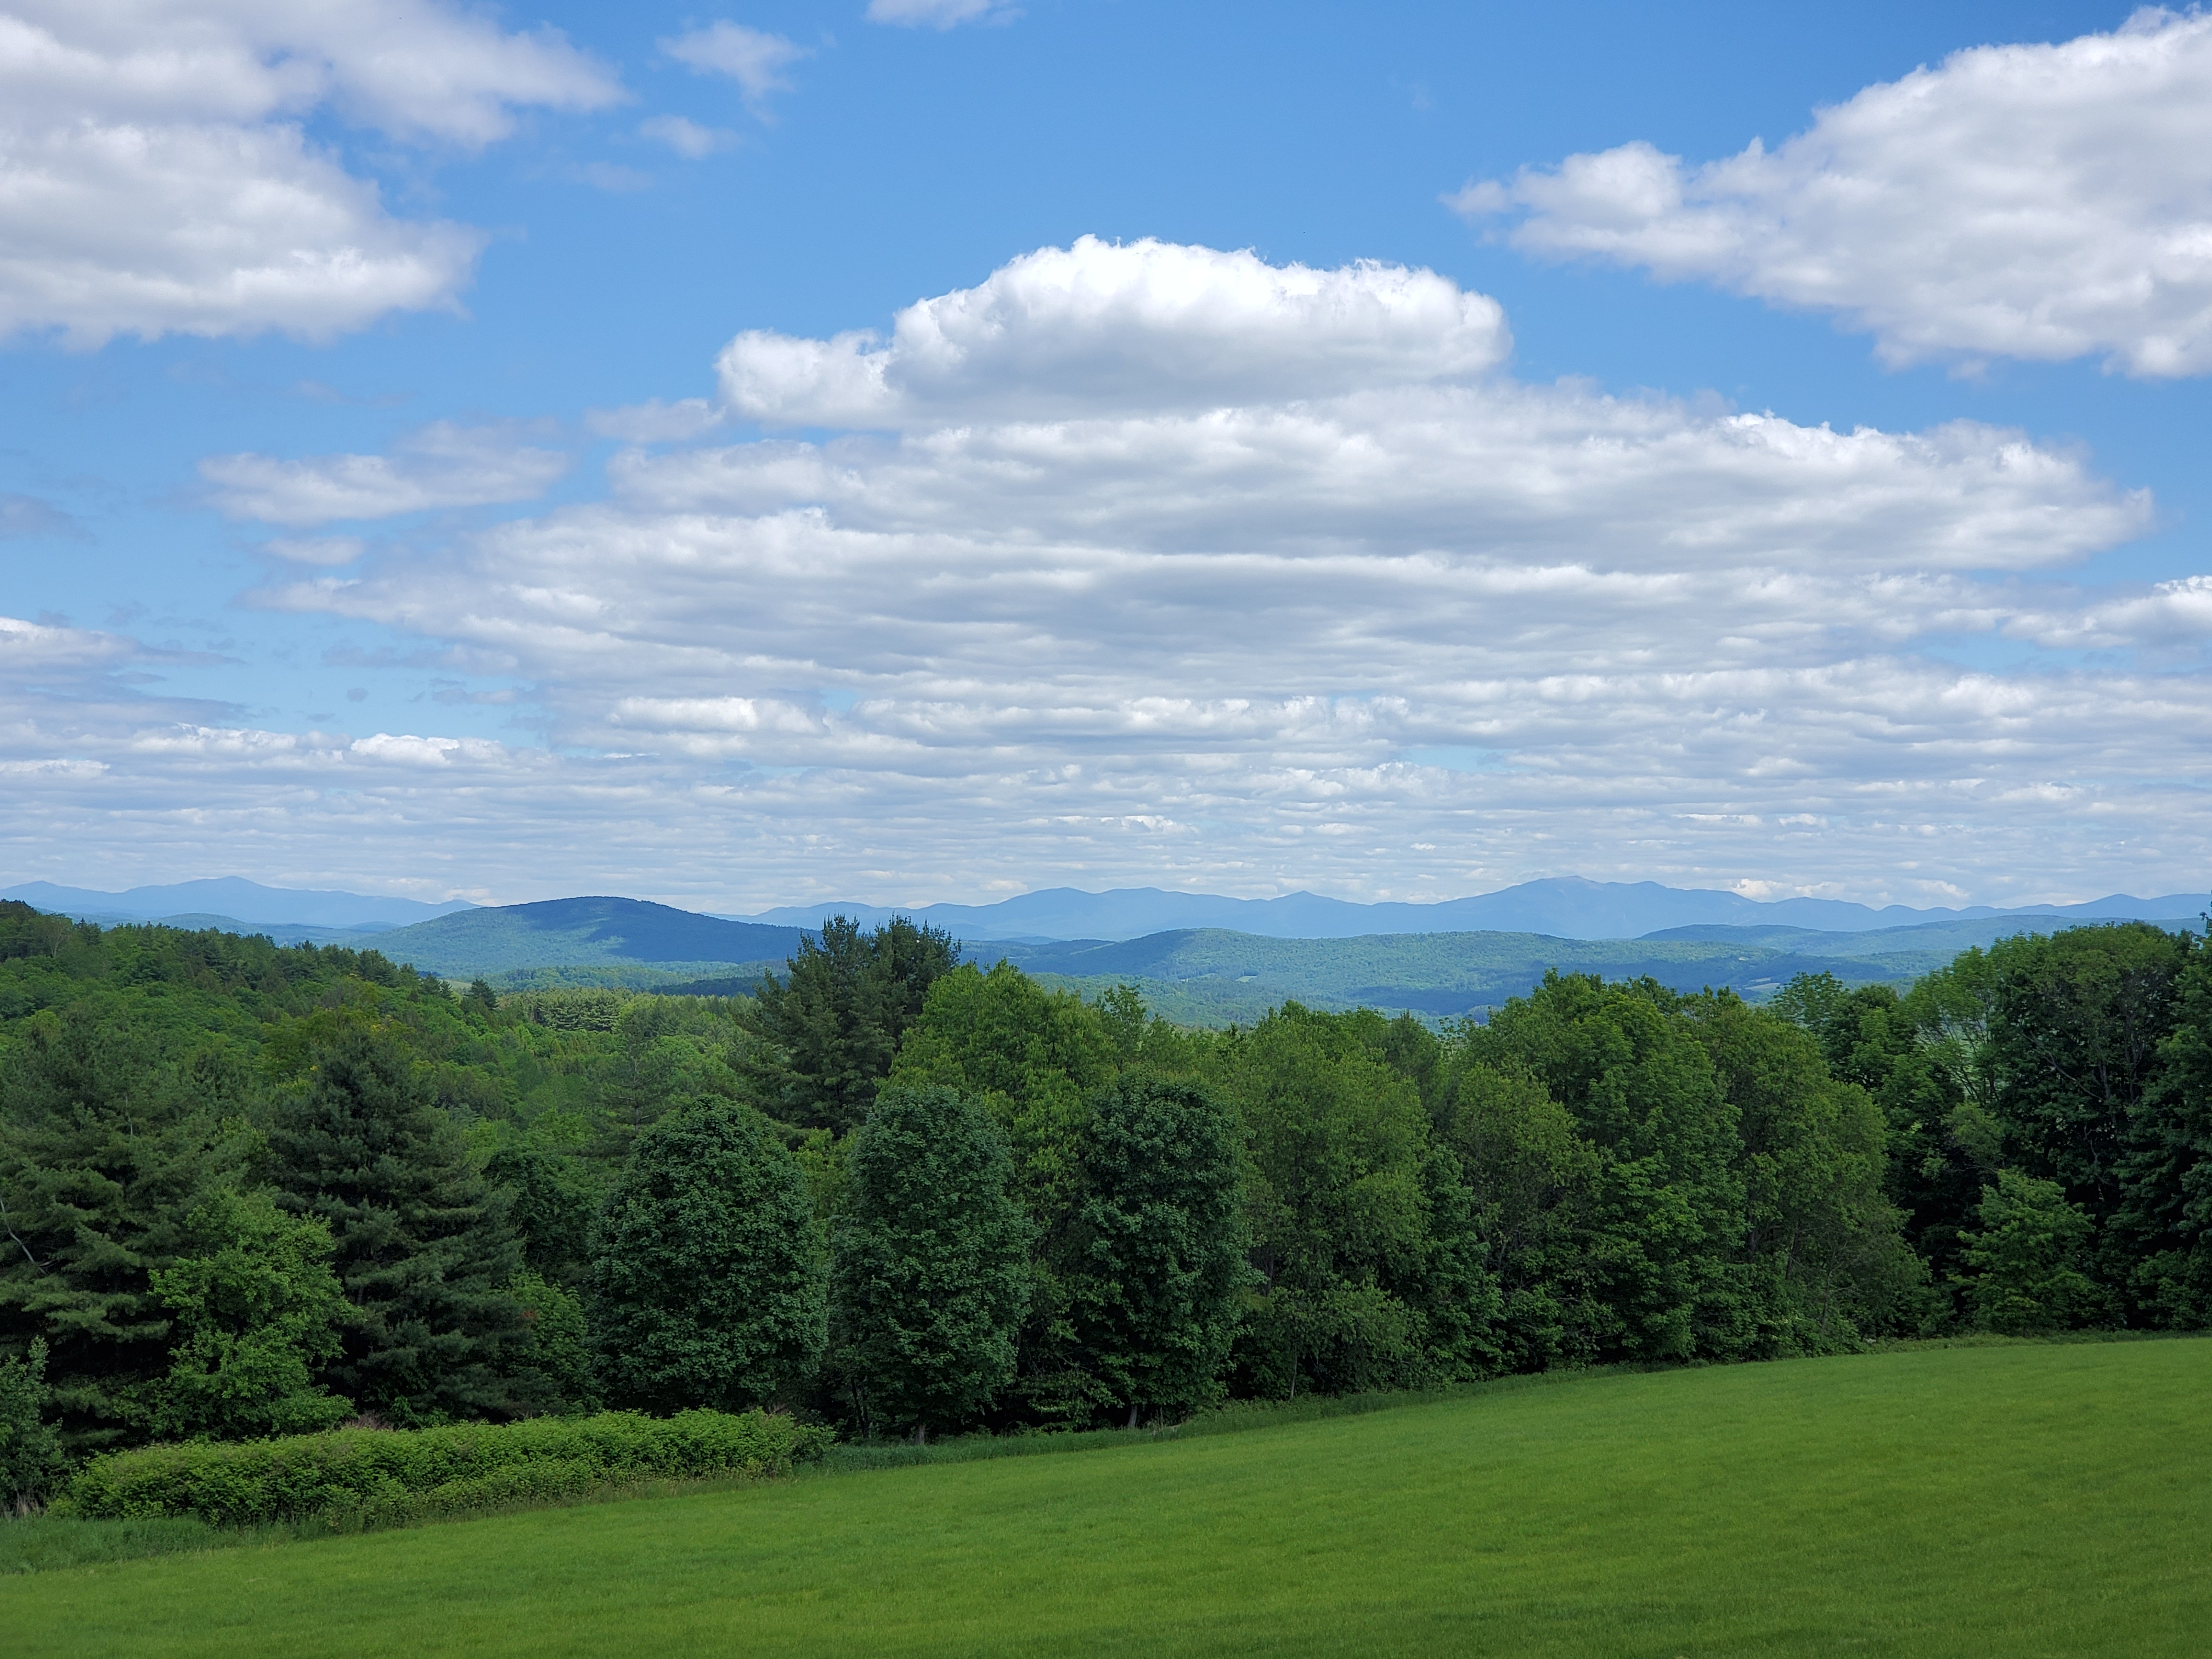 Scenic View - Danville, VT - Renee-Marie T Smith